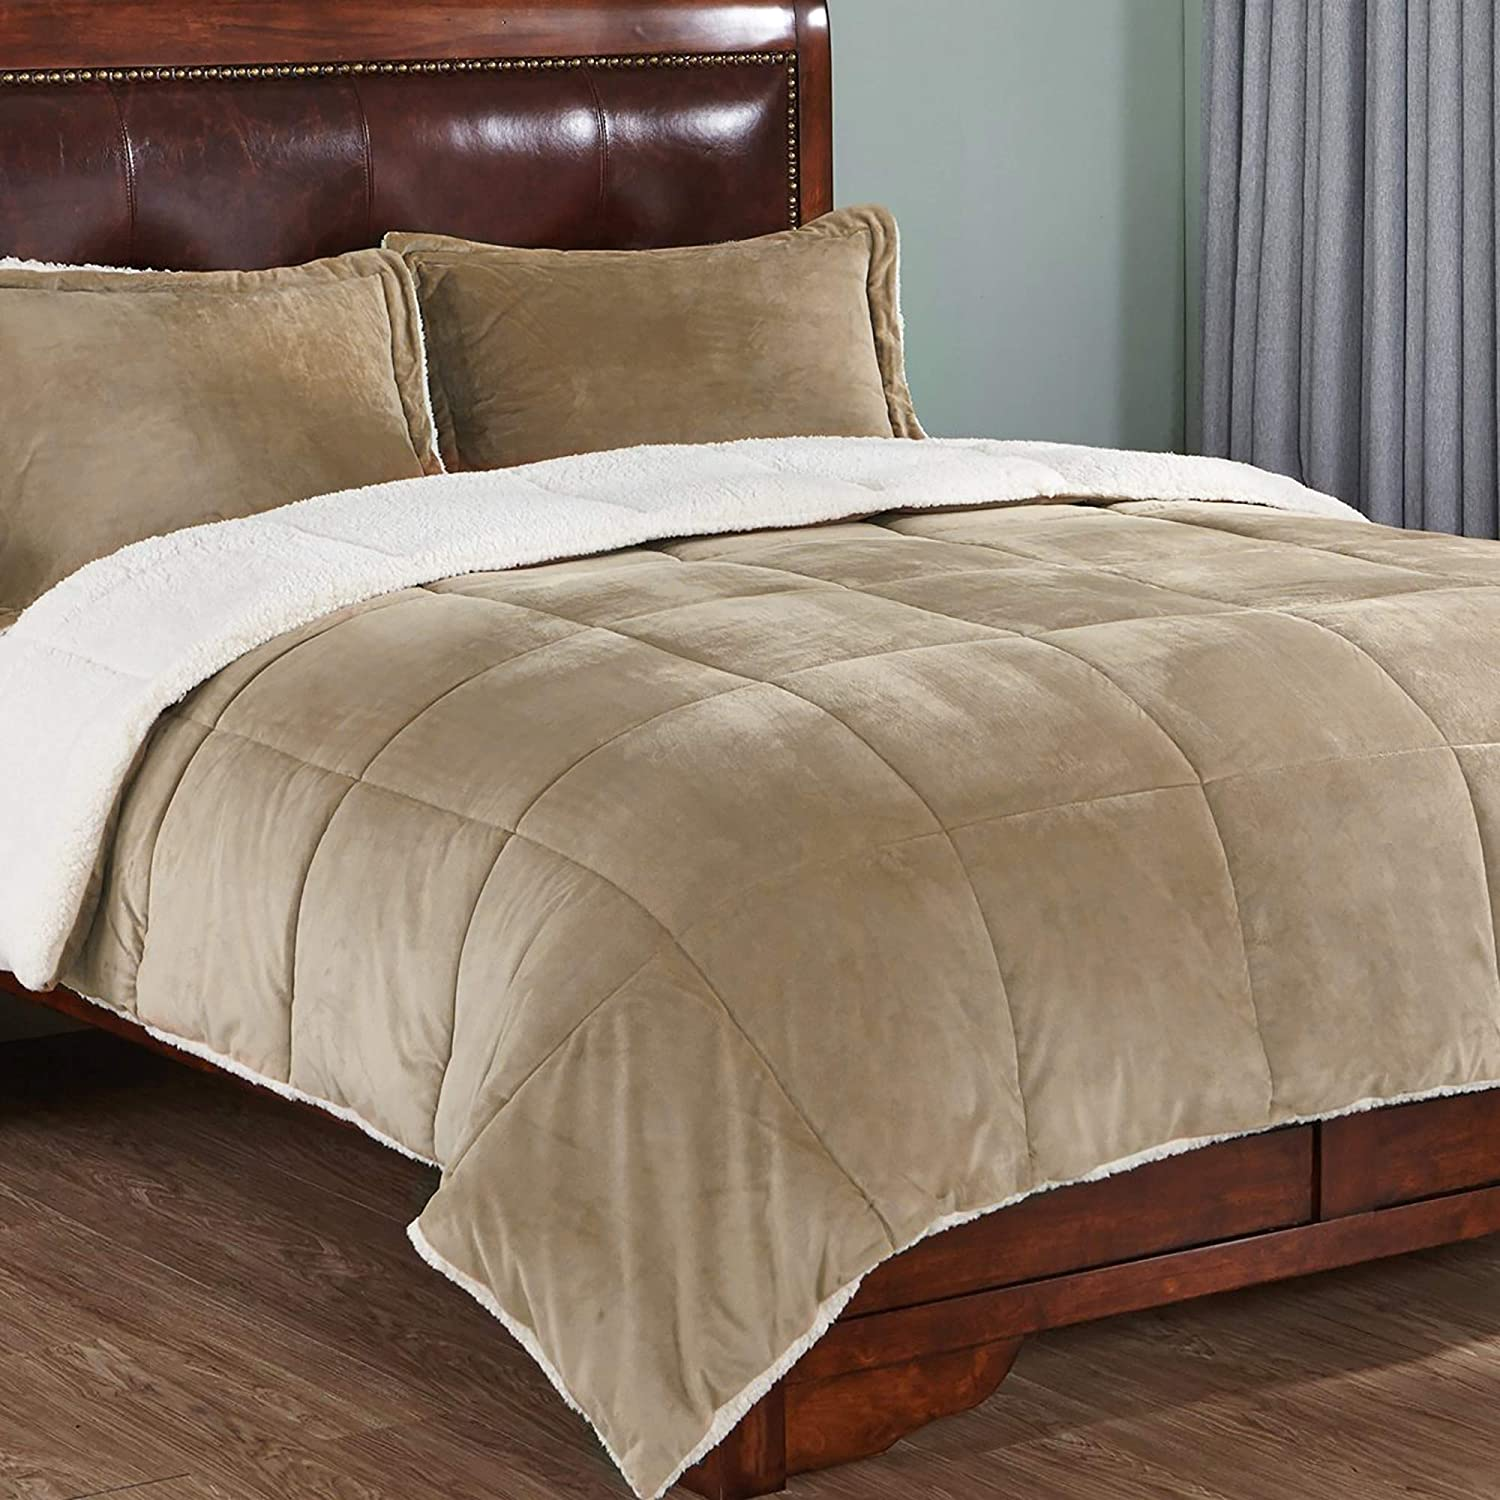 PEACE NEST 3-Piece Comforter Set Plush Sherpa Reversible Down Alternative Quilt, with 2 Pillow Shams, King Size, Gold